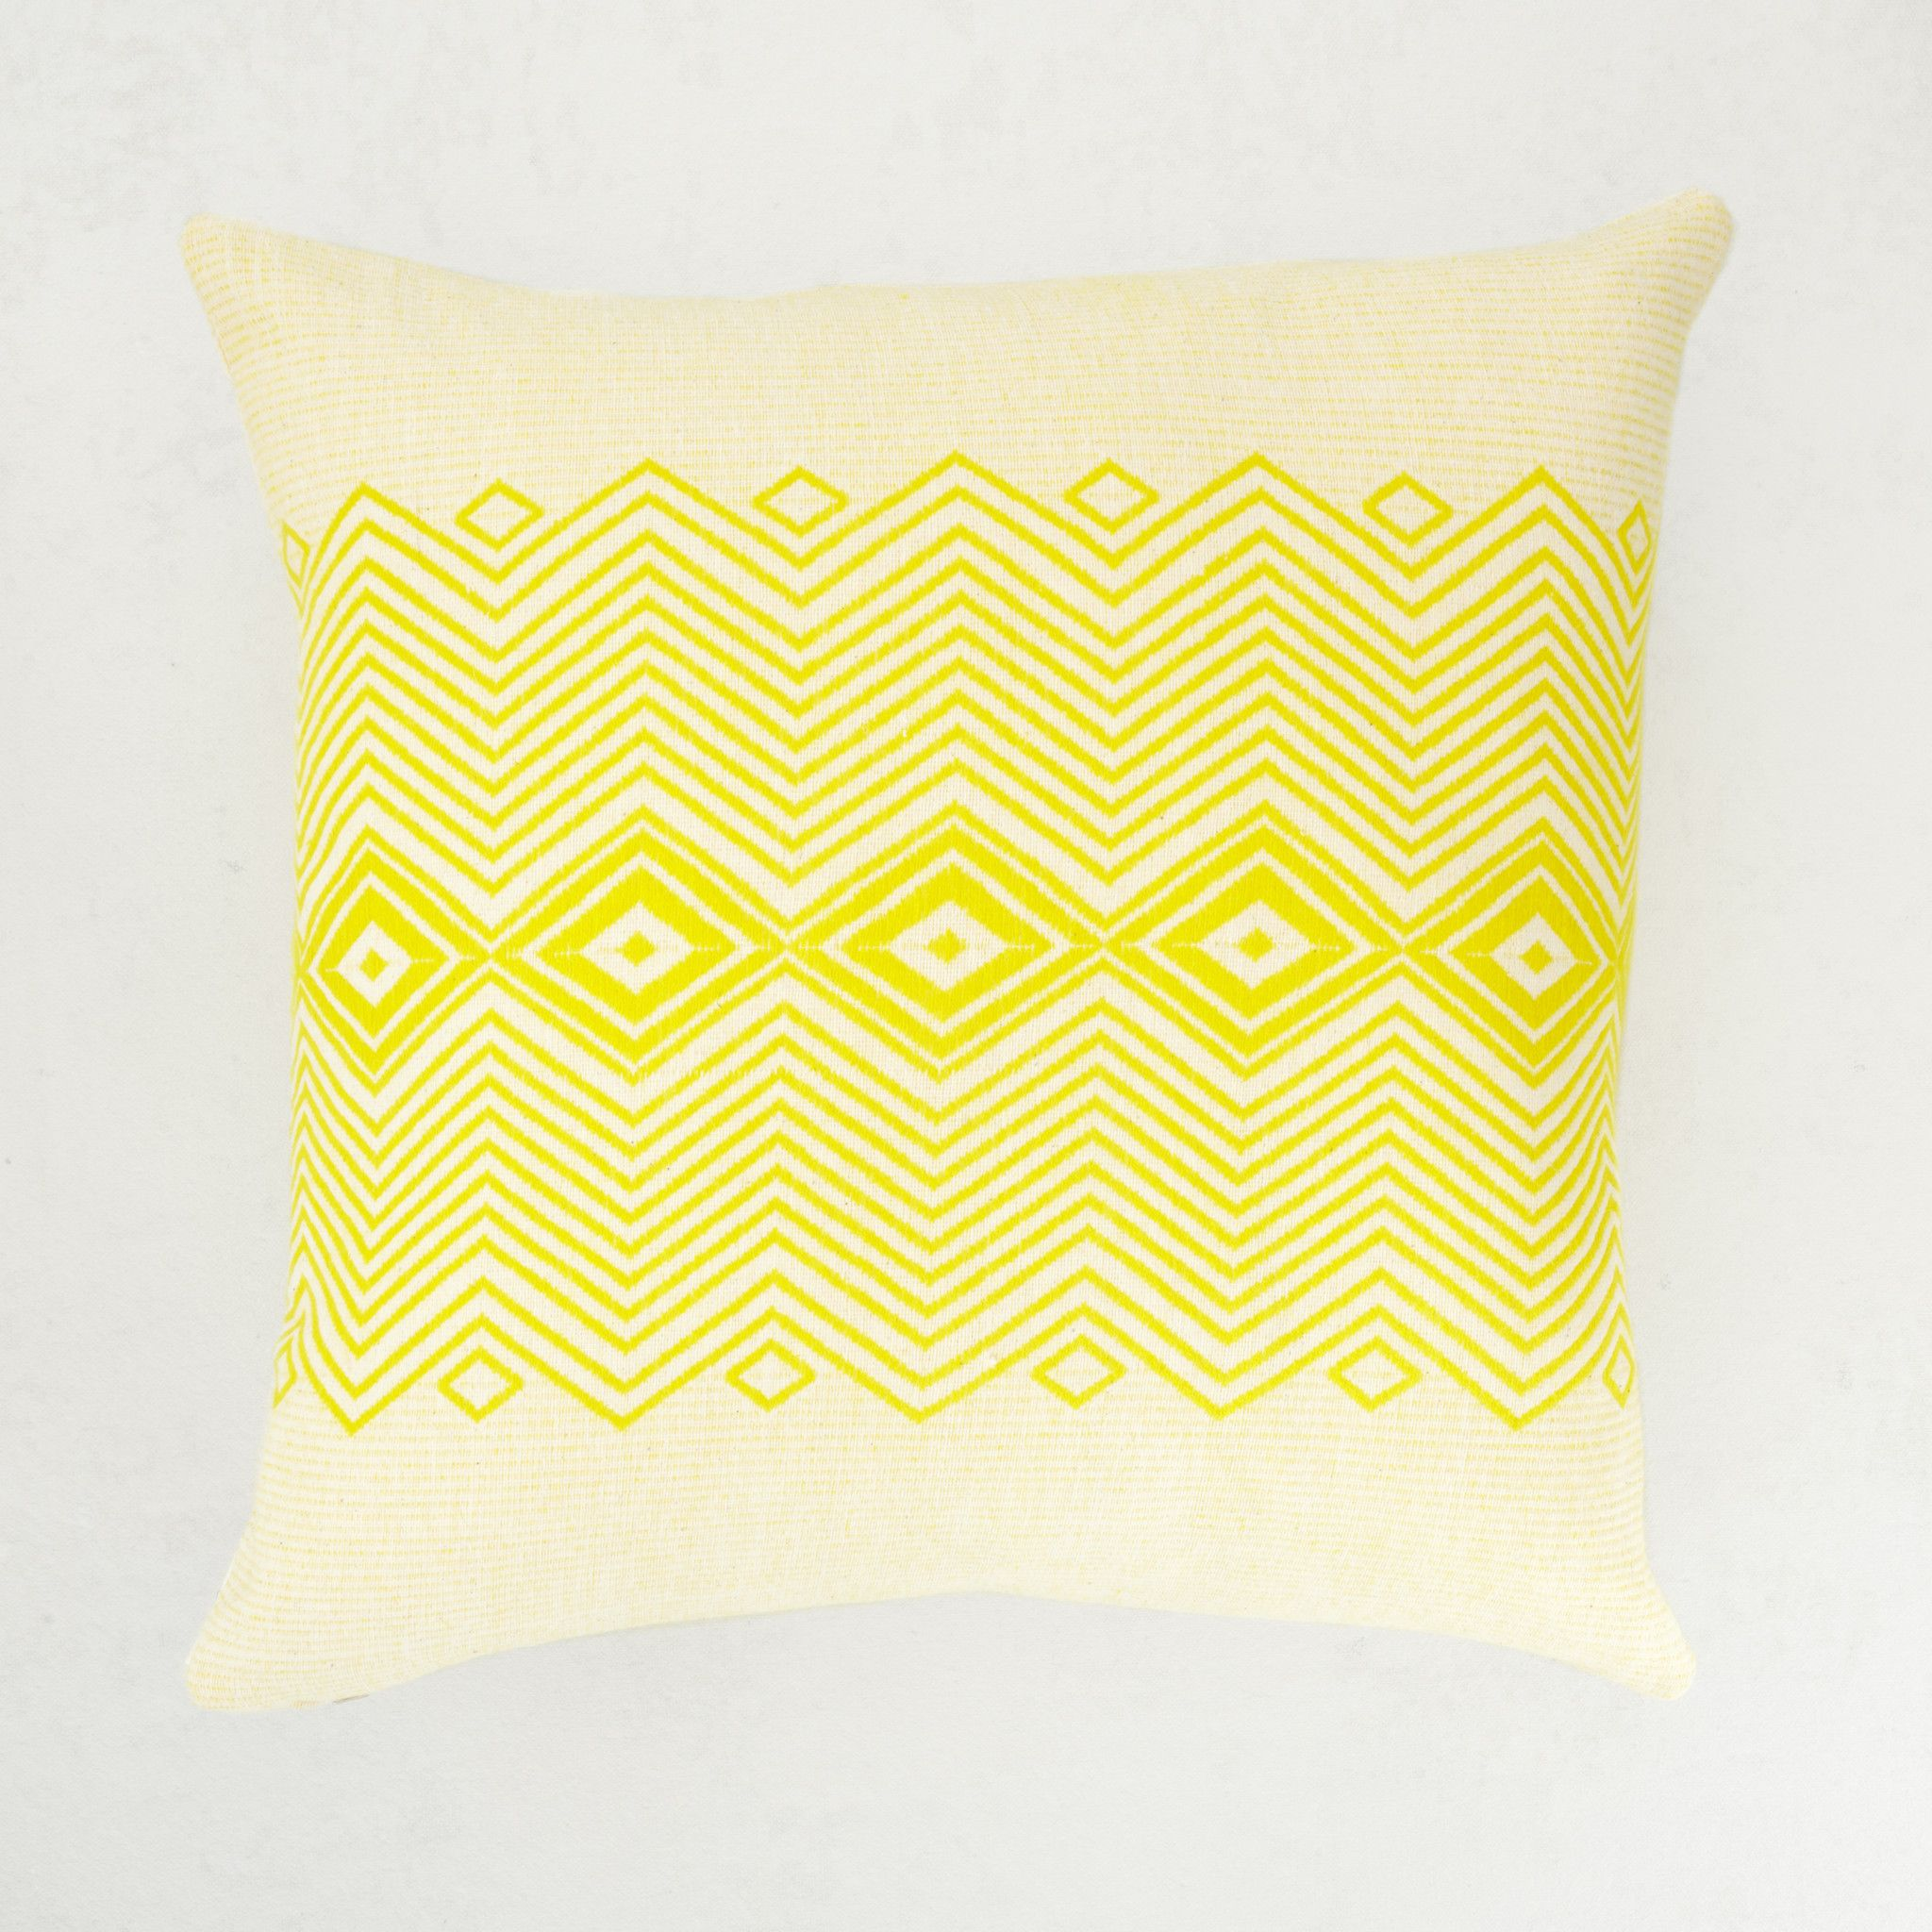 African Orchid Pillow From Bole Road Textiles Yellow And Natural Cotton Handwoven In Ethiopia With Images Pillows African Furniture Yellow Pillows